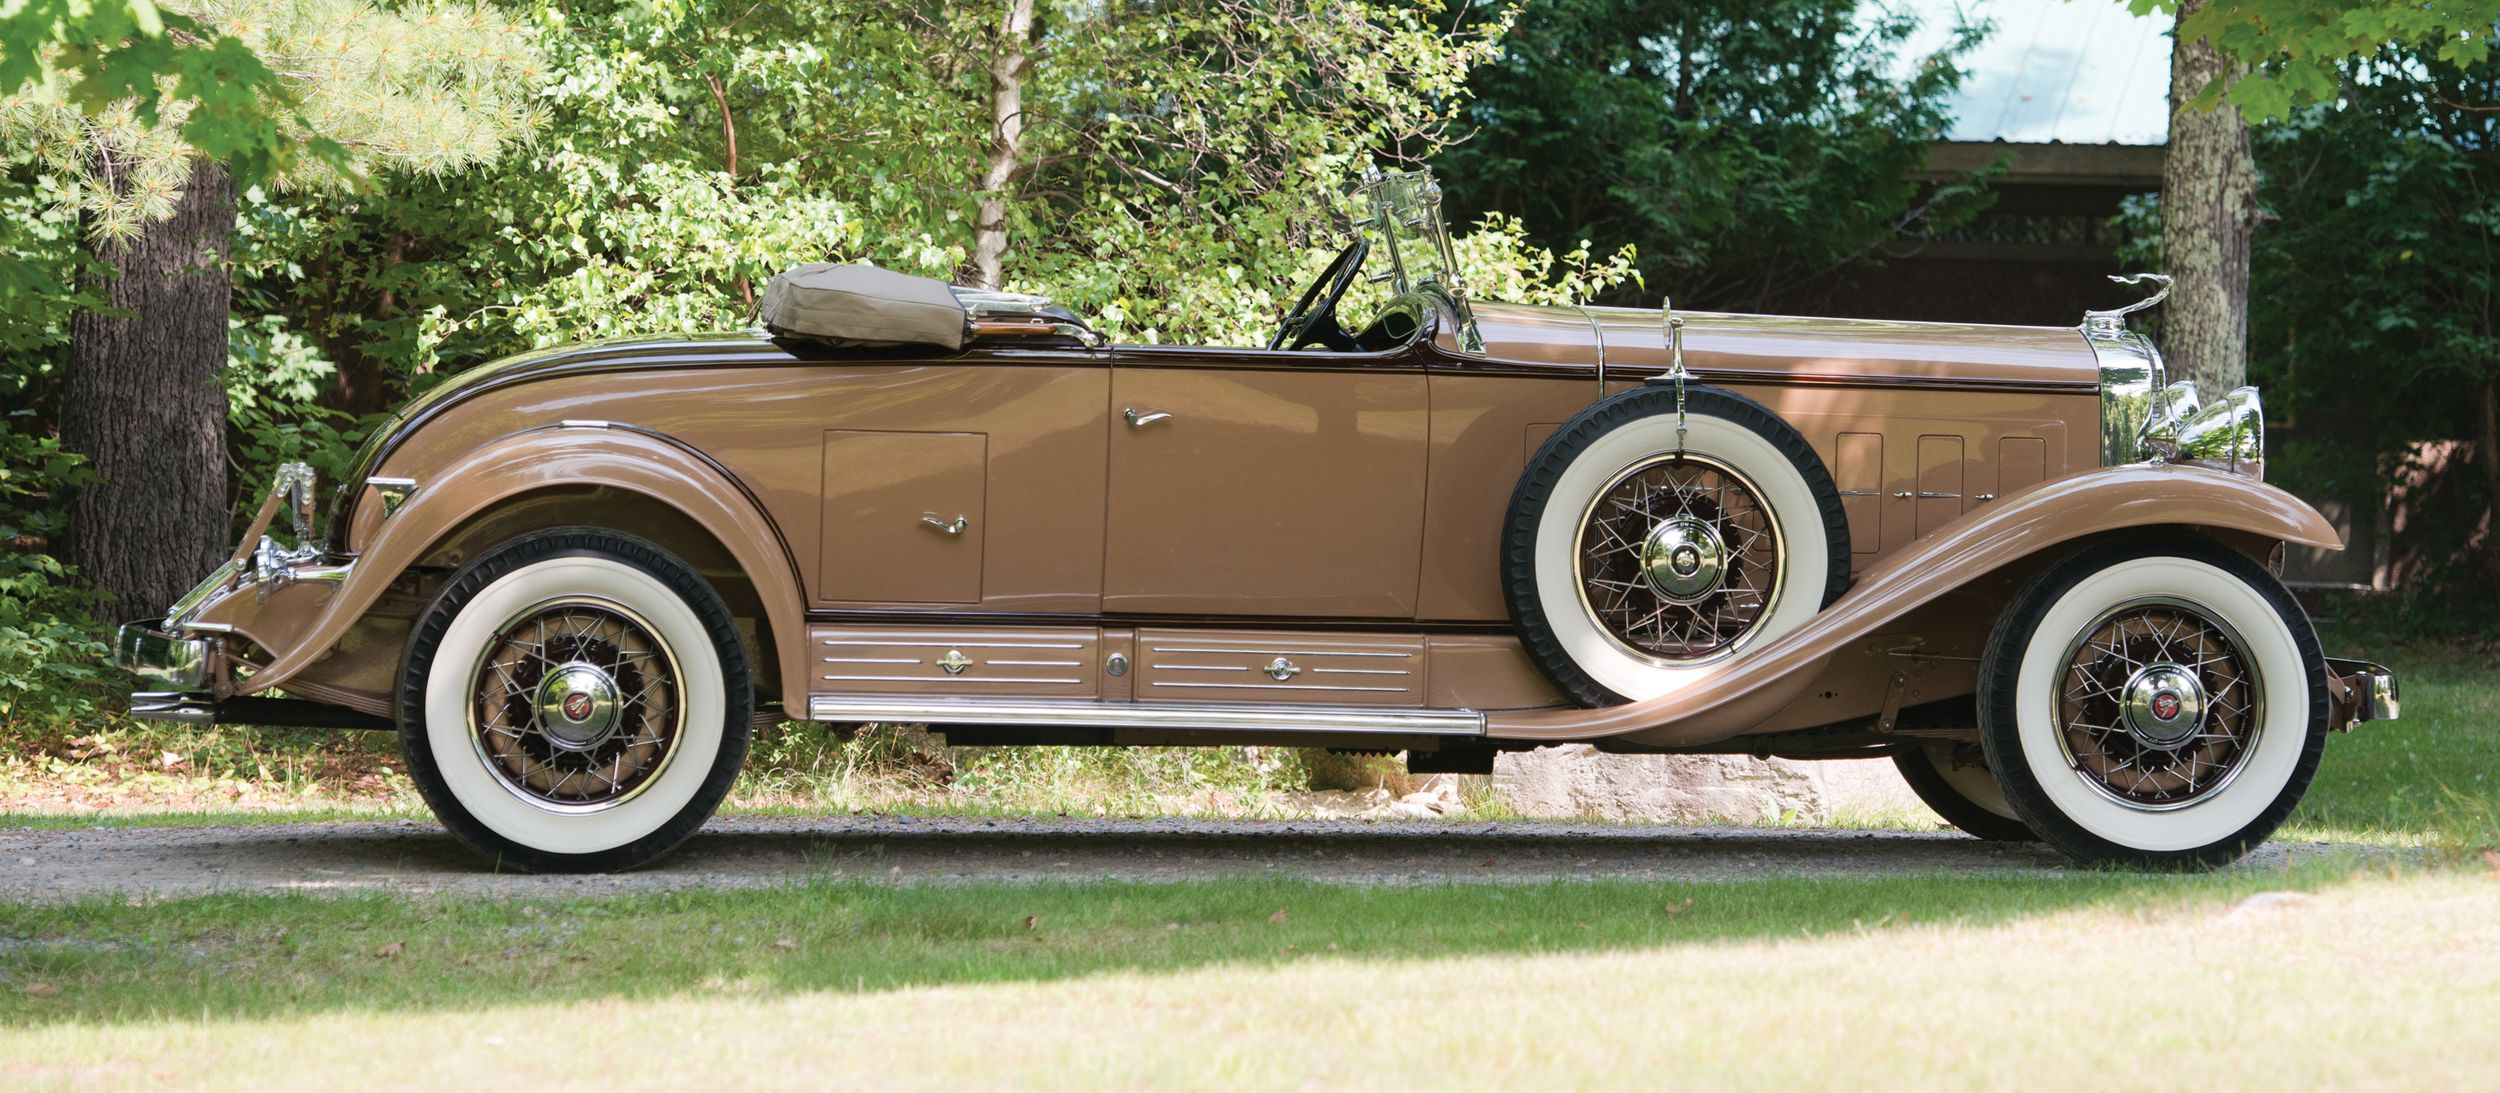 1930 Cadillac V16 Roadster Pics, Vehicles Collection